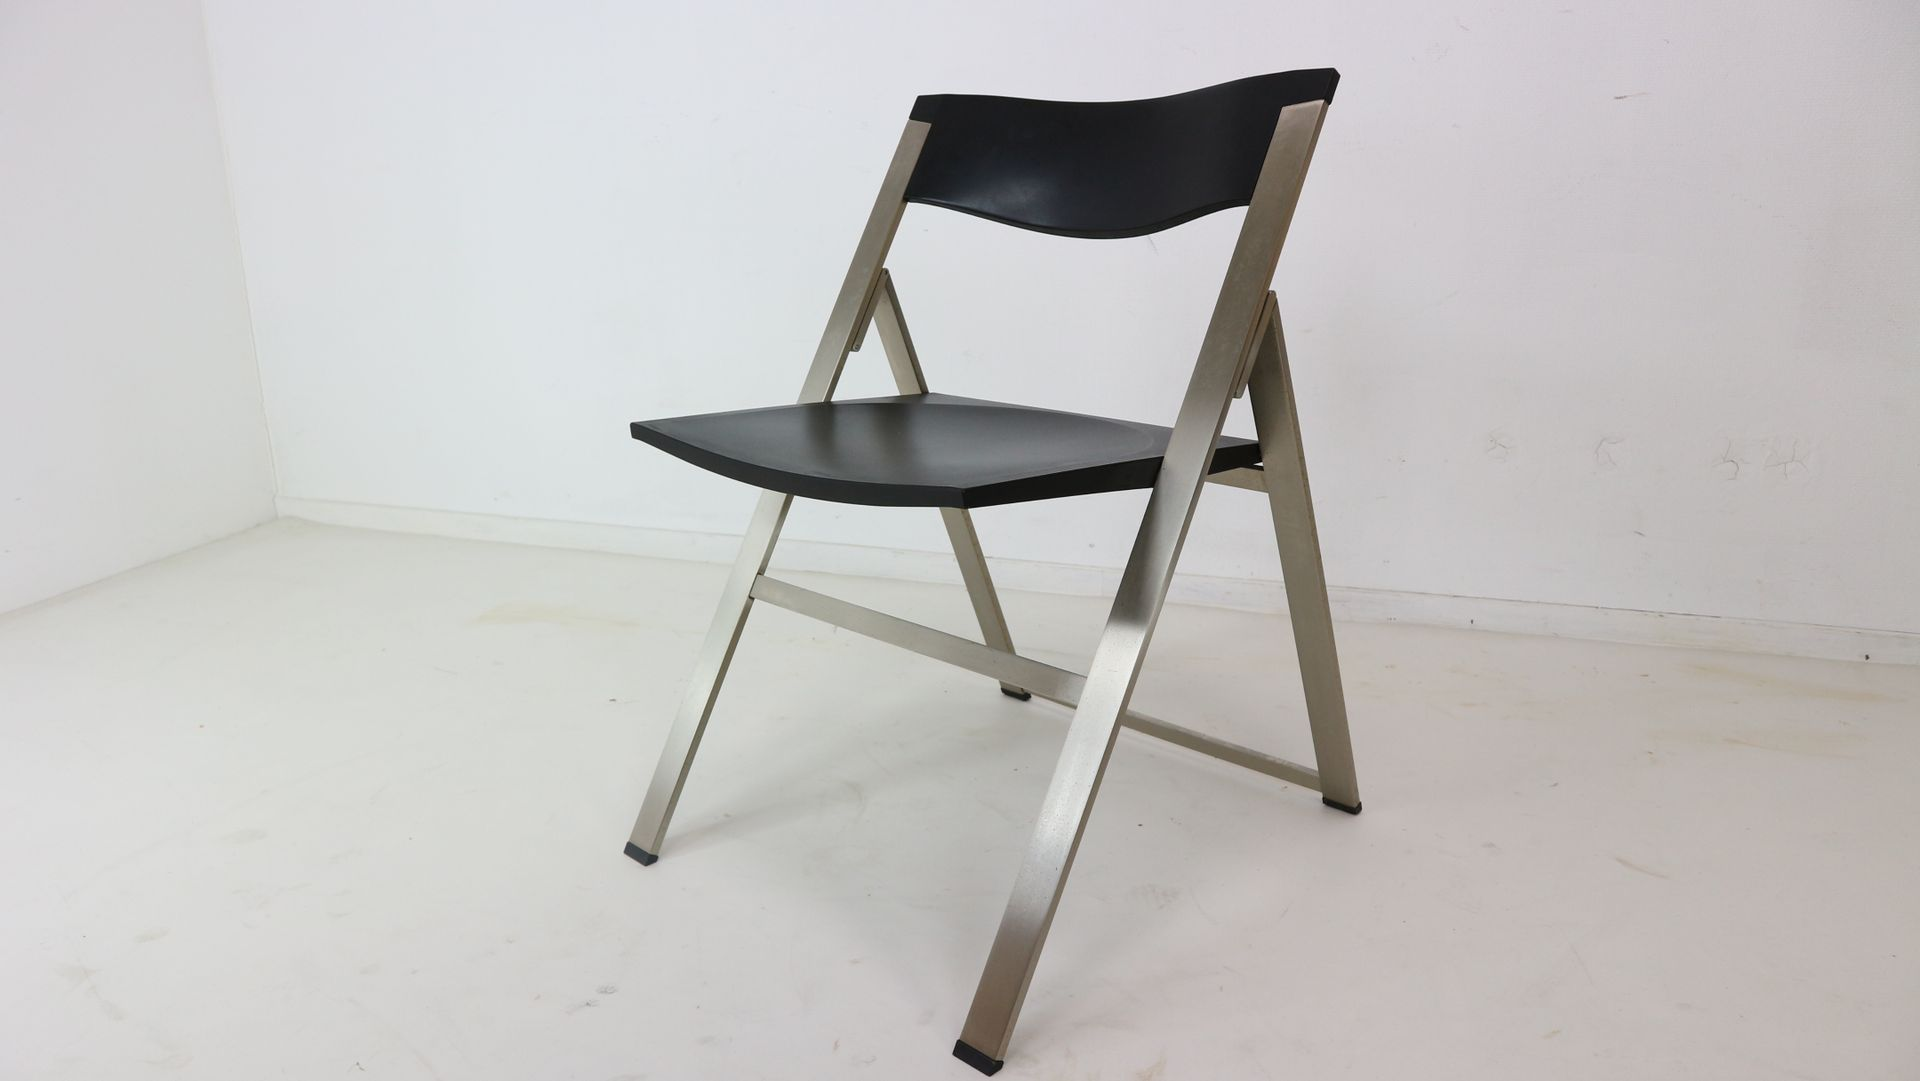 P08 Folding Chairs by Justus Kolberg for Tecno 1991 Set of 4 for